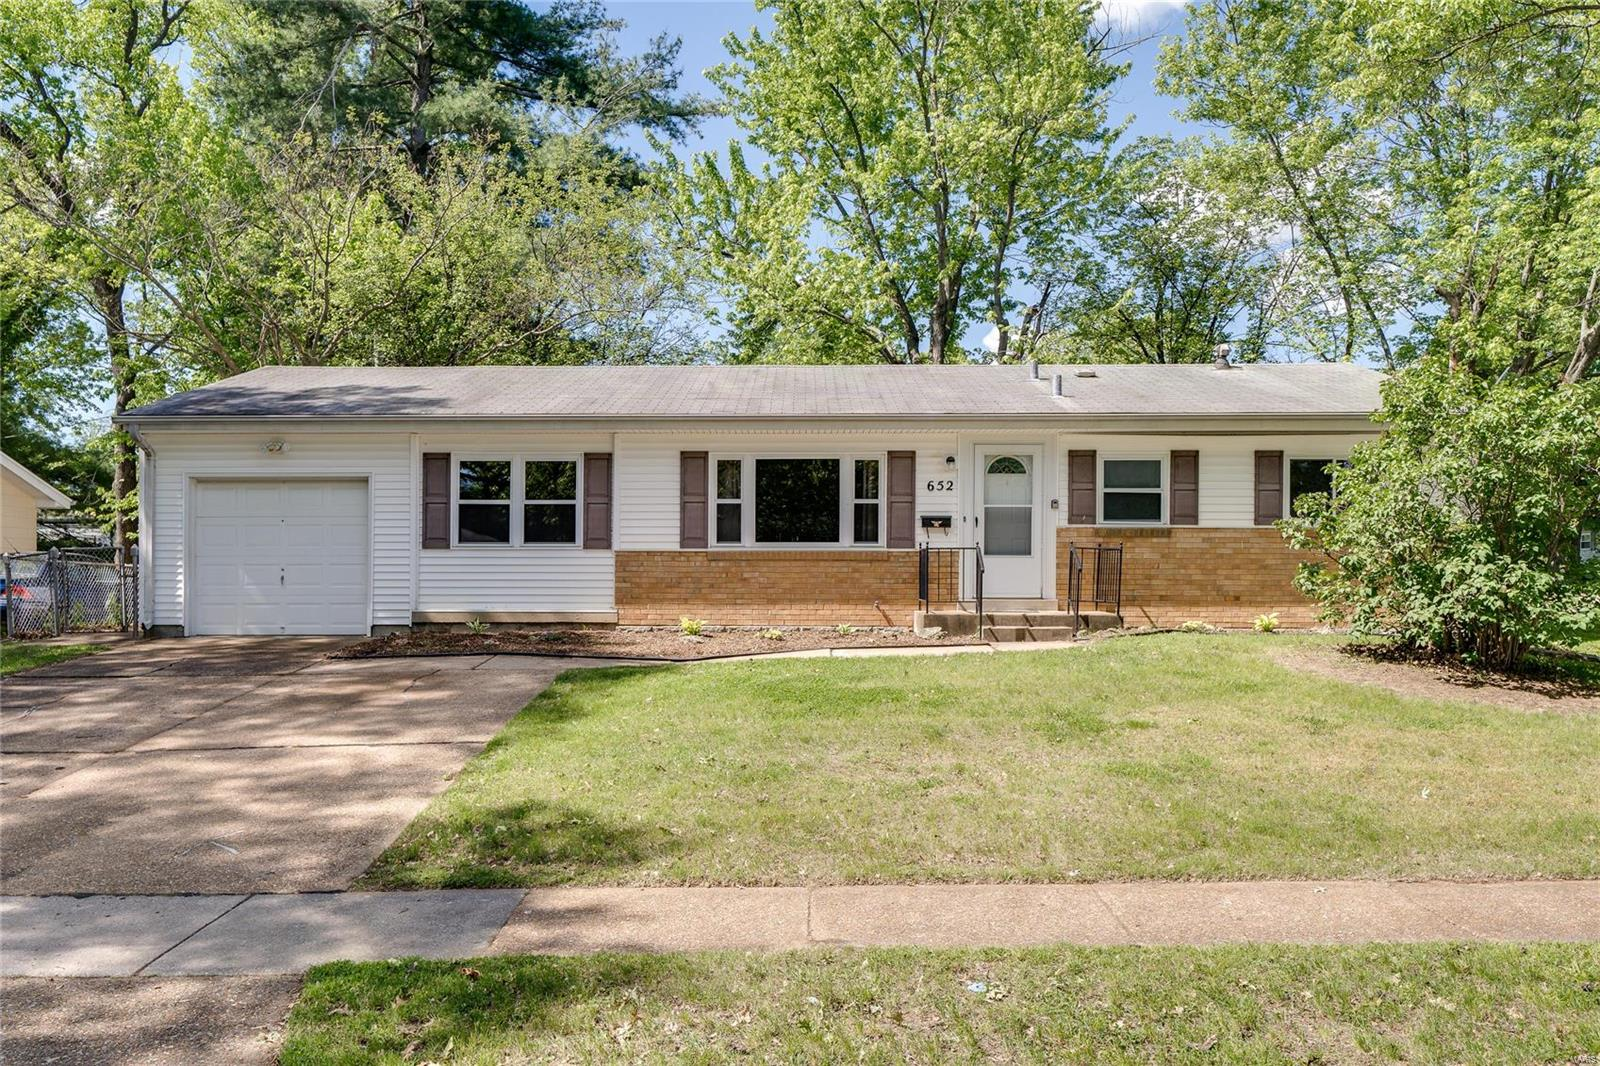 652 Village Square Property Photo - Hazelwood, MO real estate listing